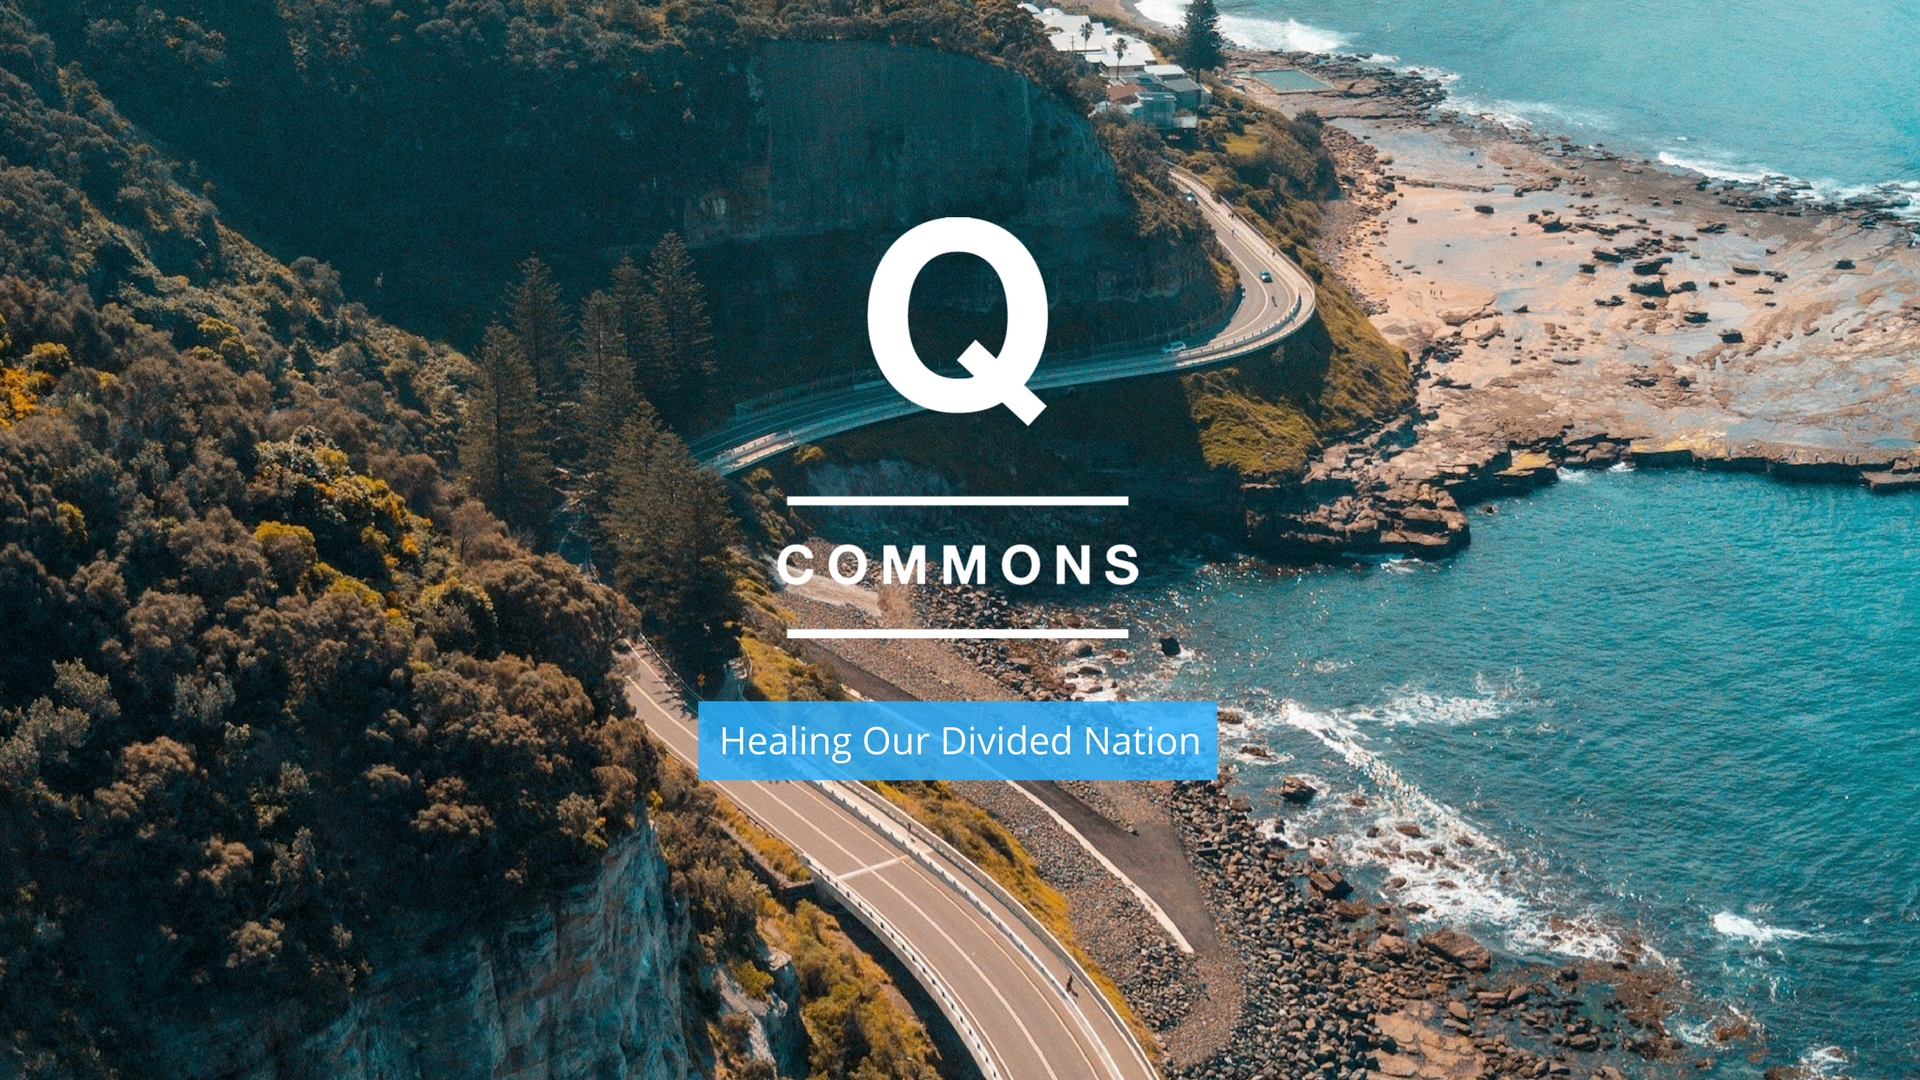 Q Commons - A New Kind of Conversation